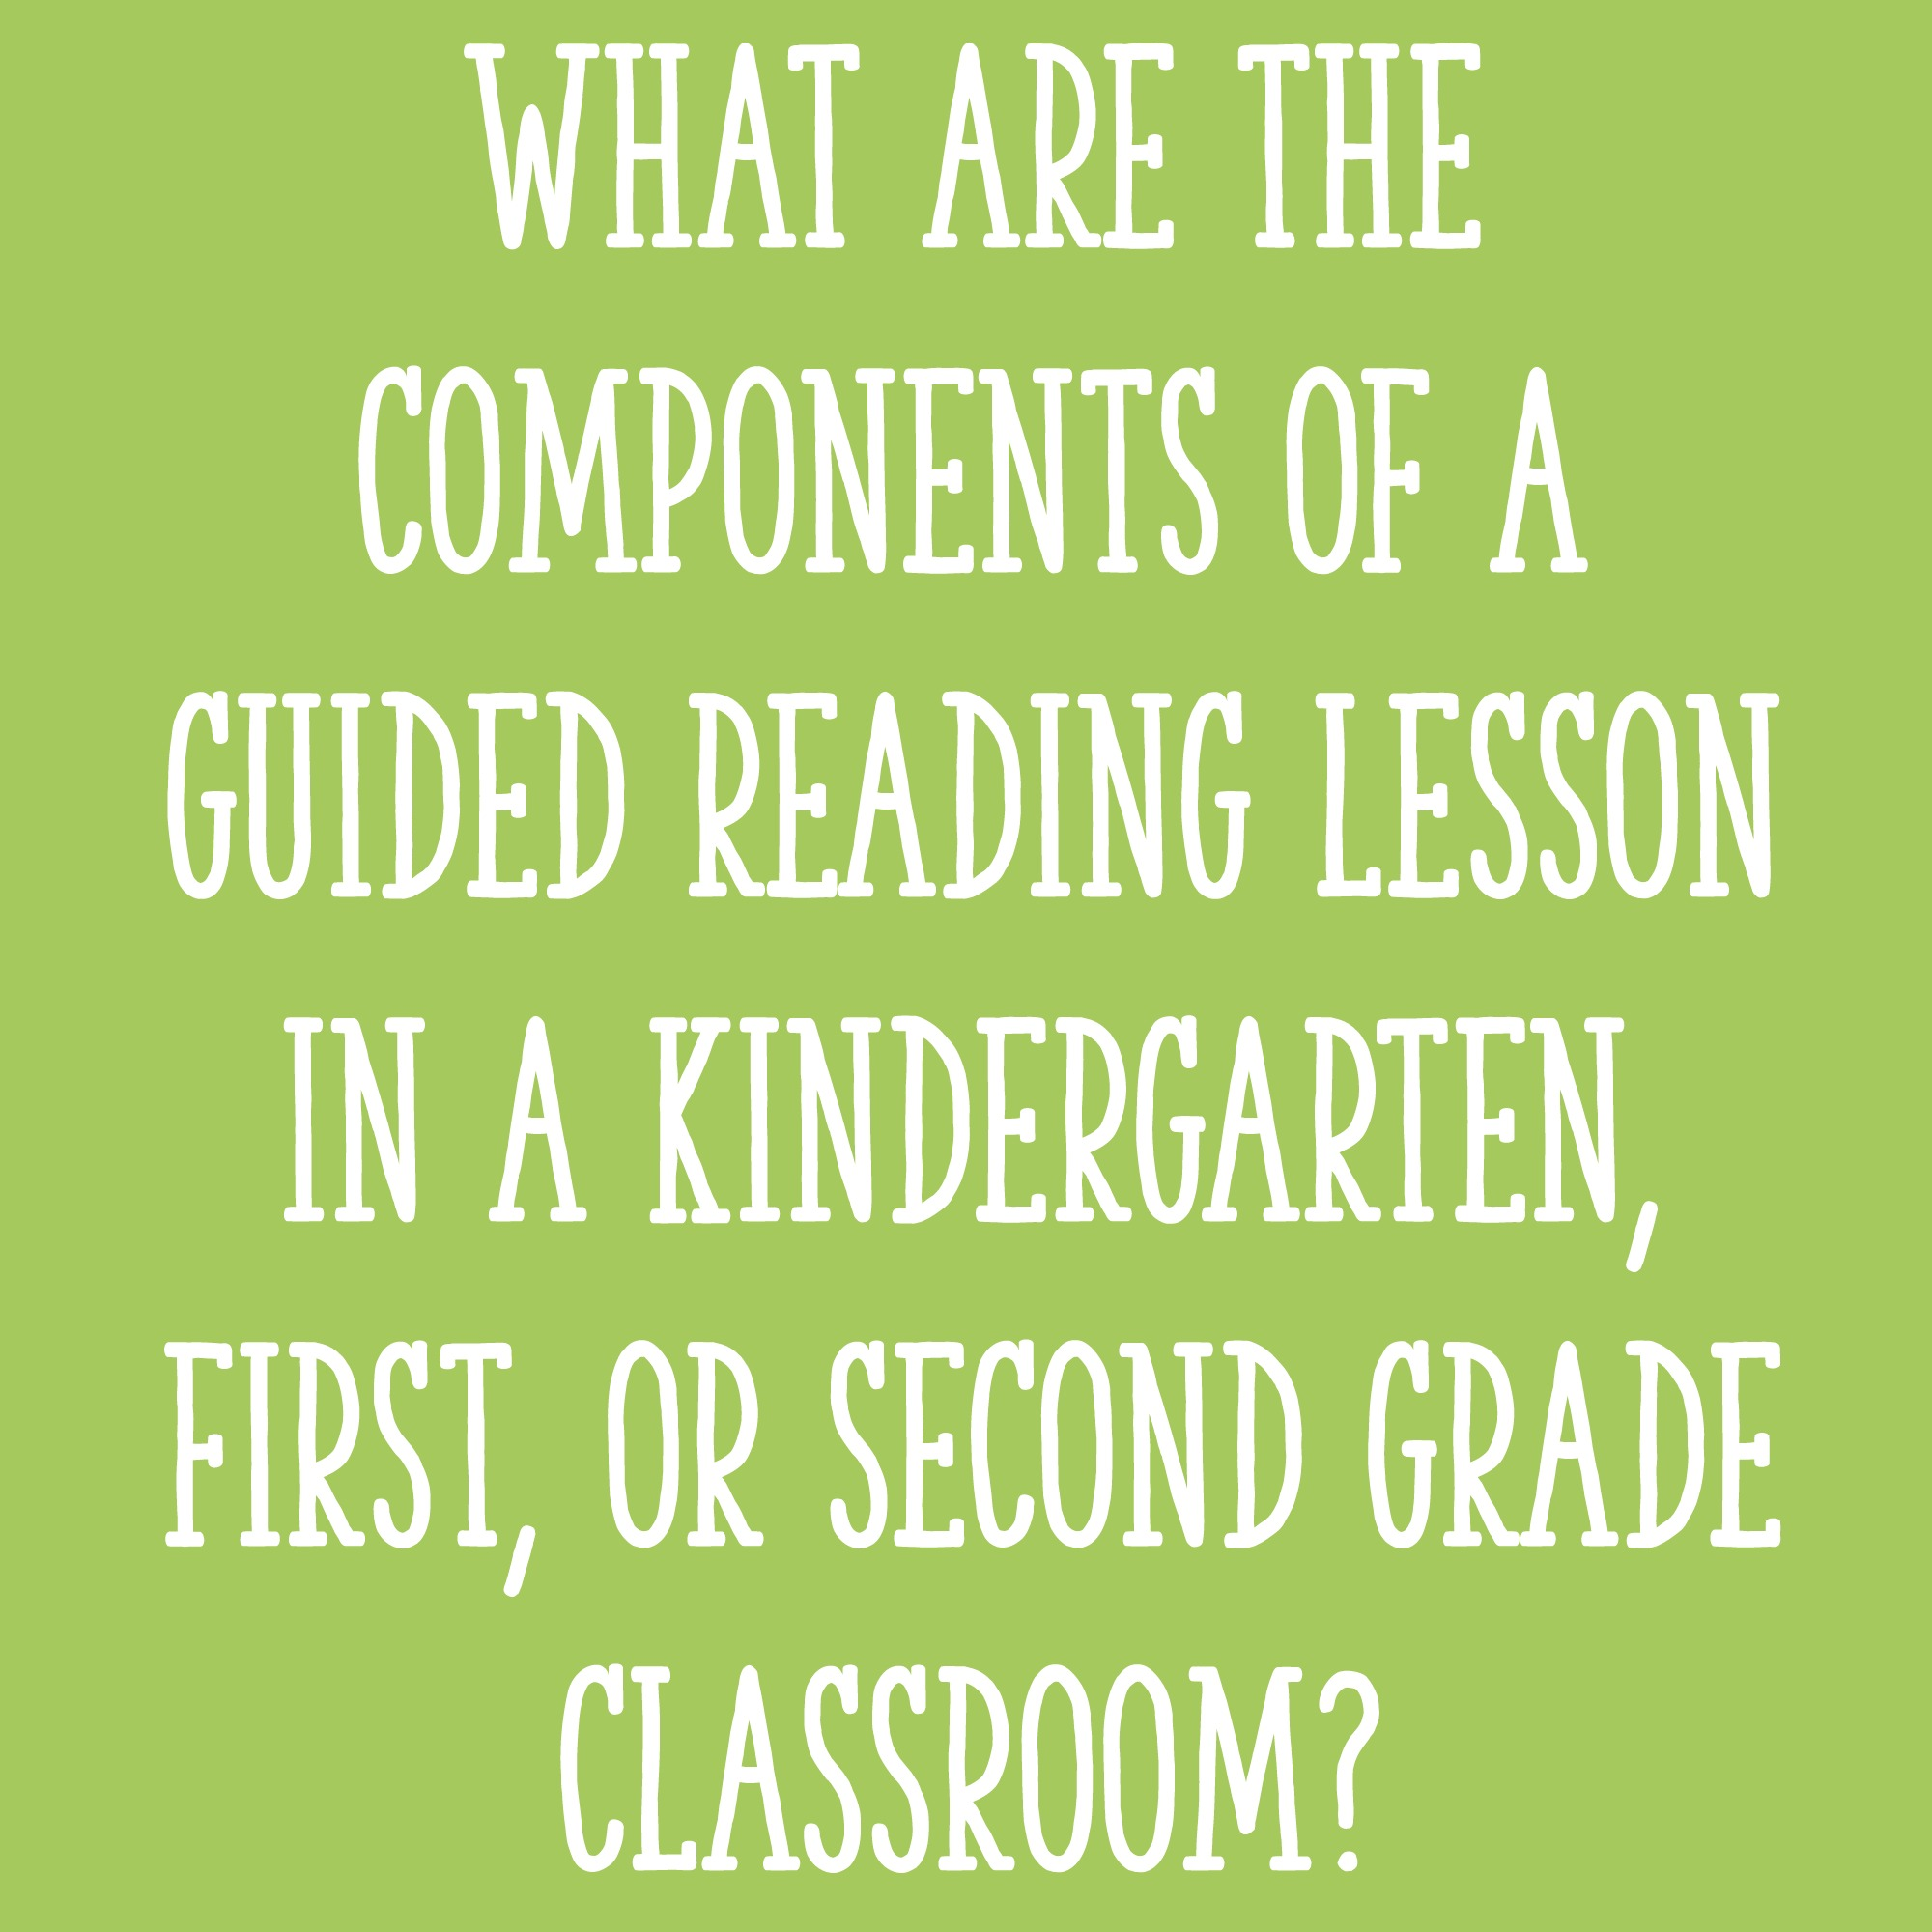 What are the components of a guided reading lesson in a